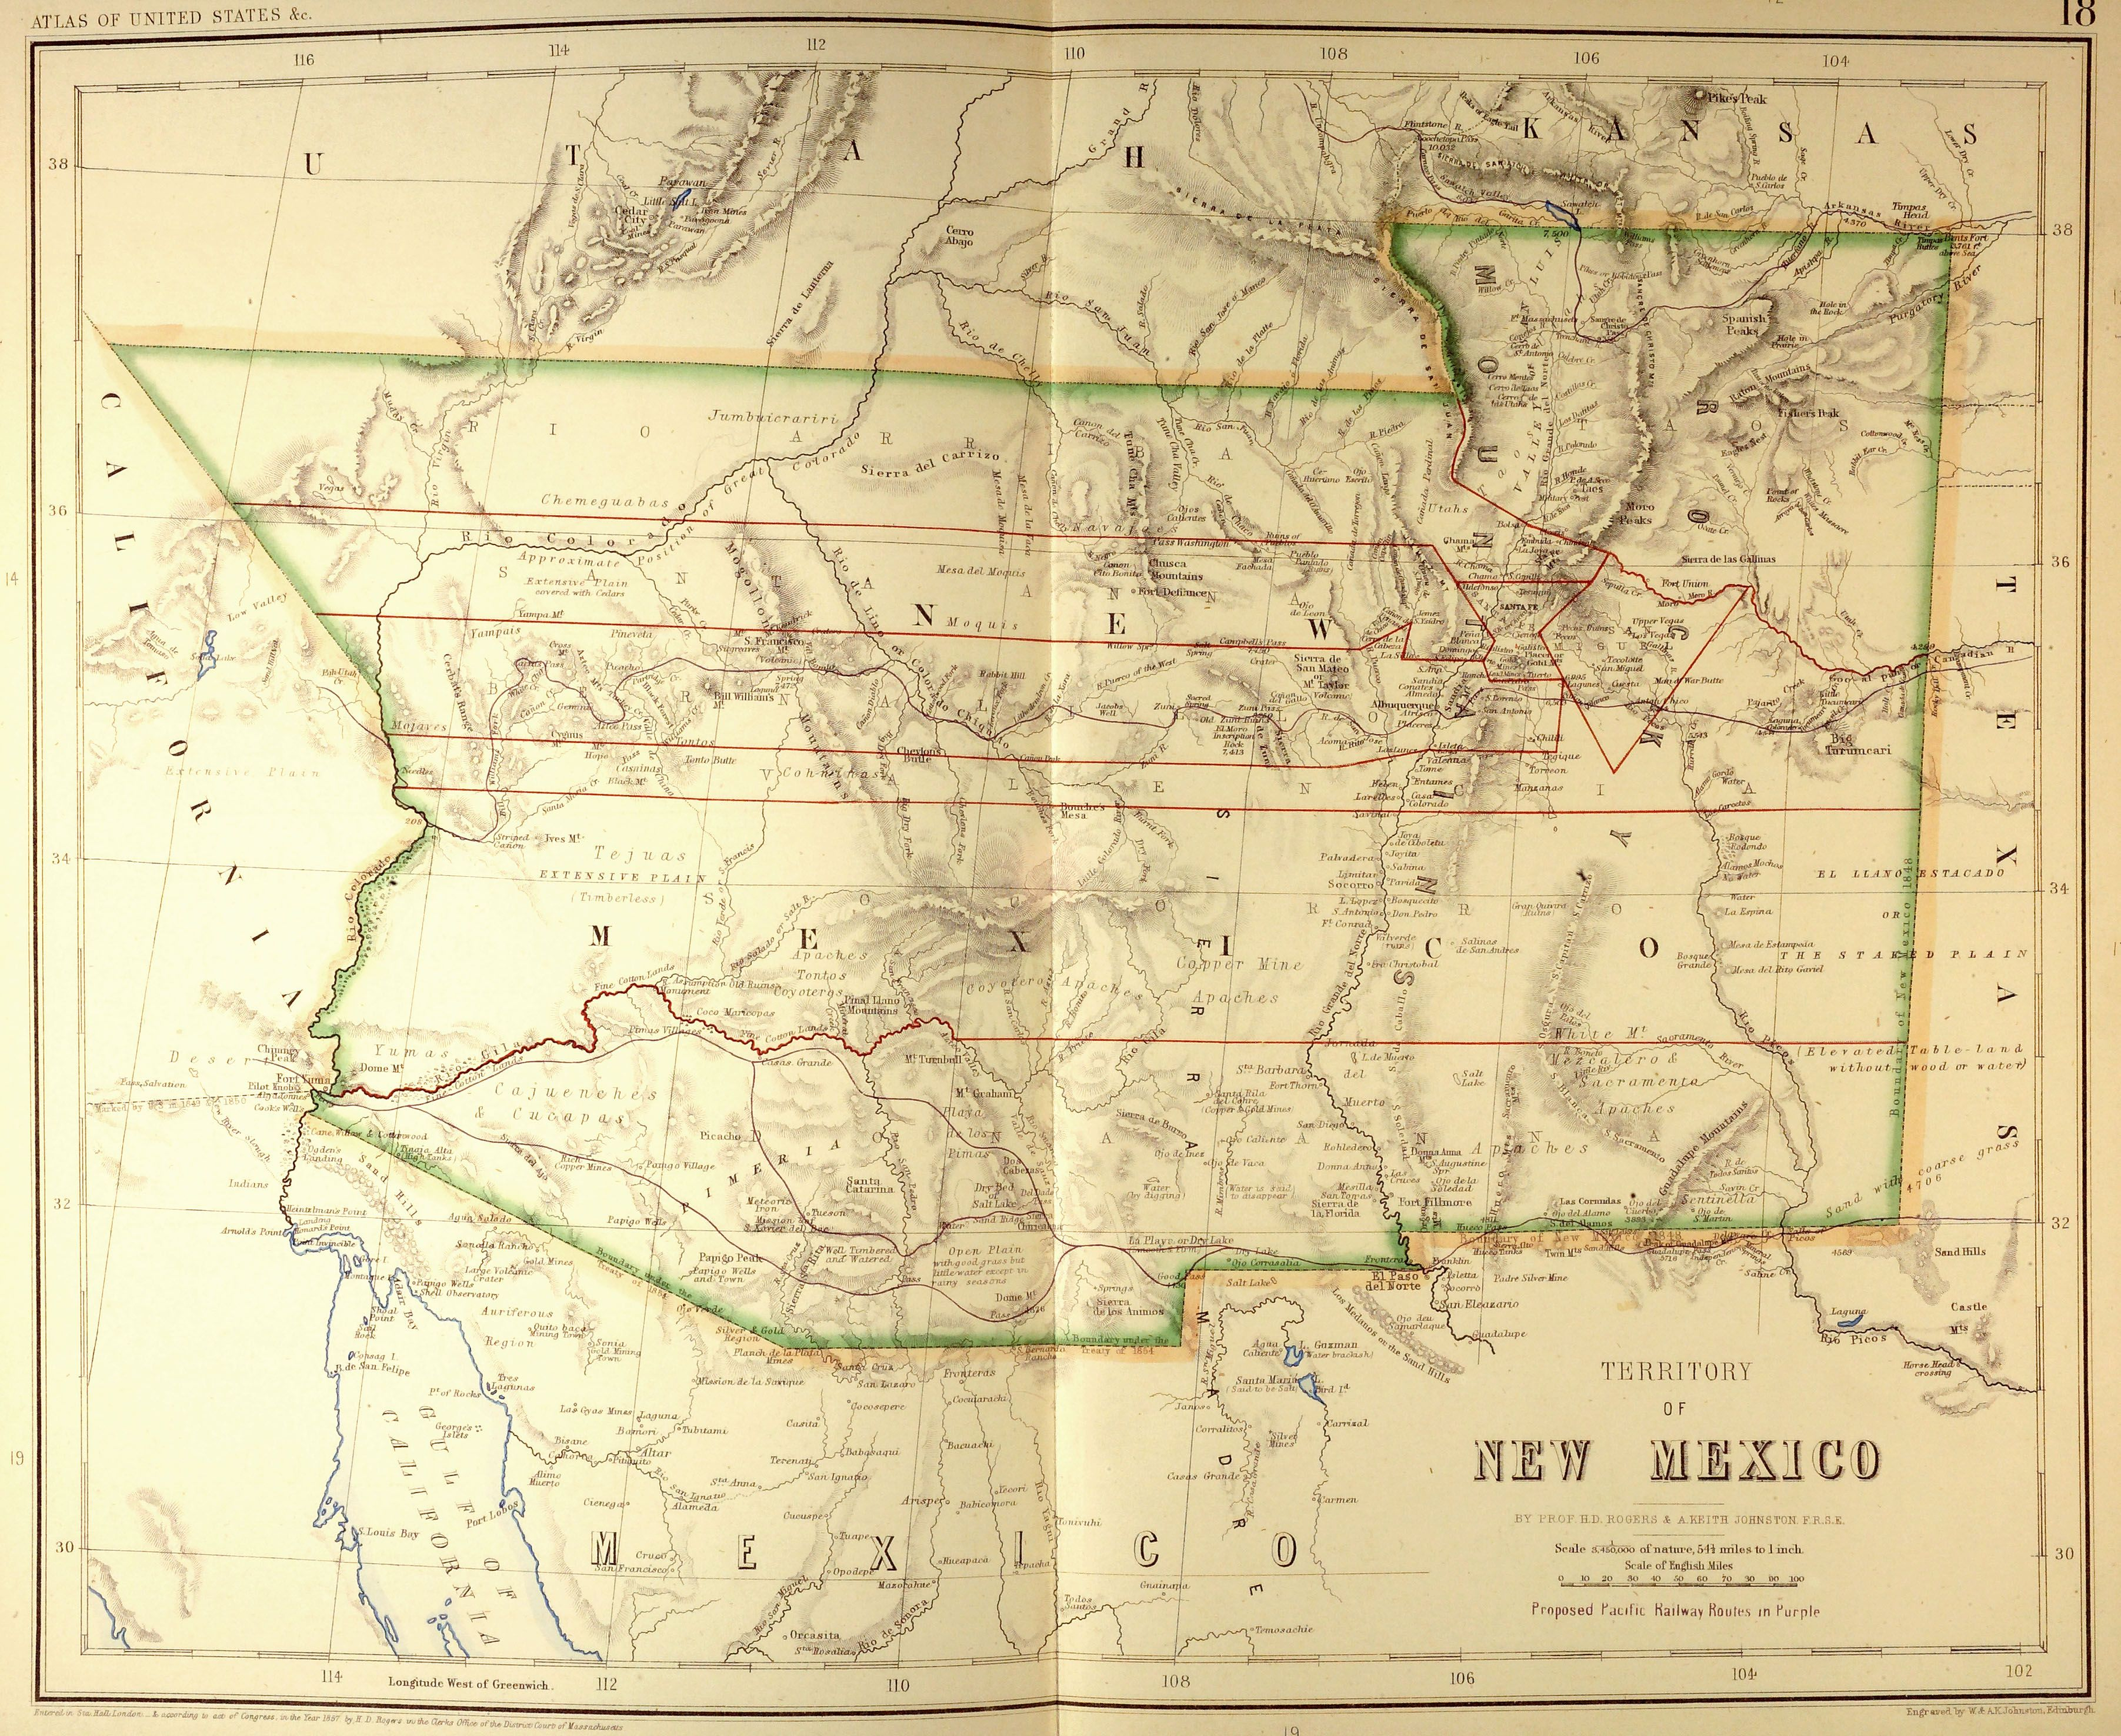 explore old maps news mexico and more